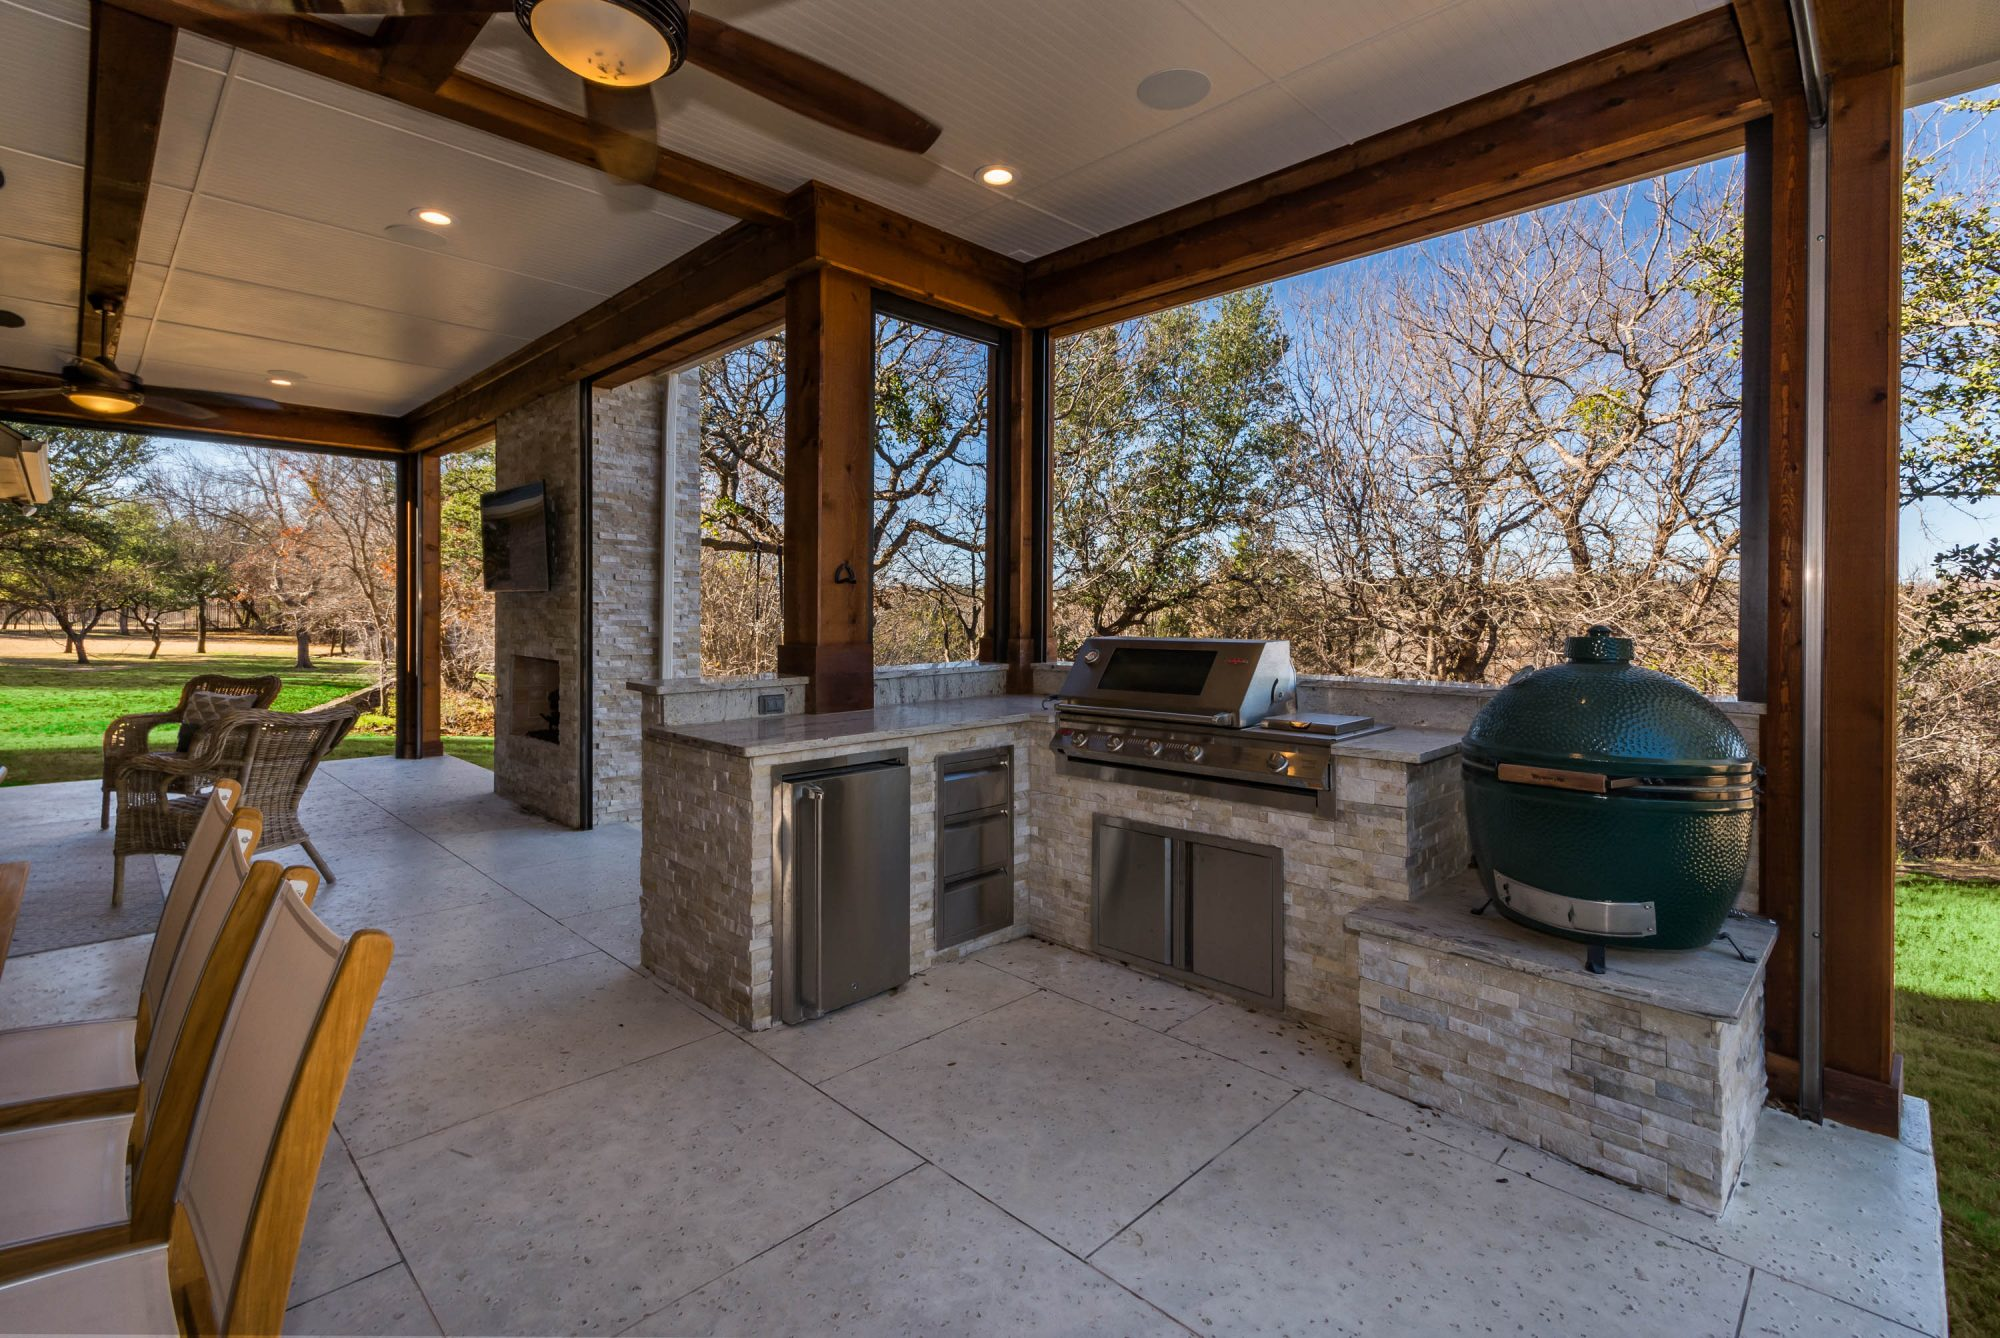 Small outdoor kitchen area within an outdoor living space in Dallas built by Compass Outdoor Design